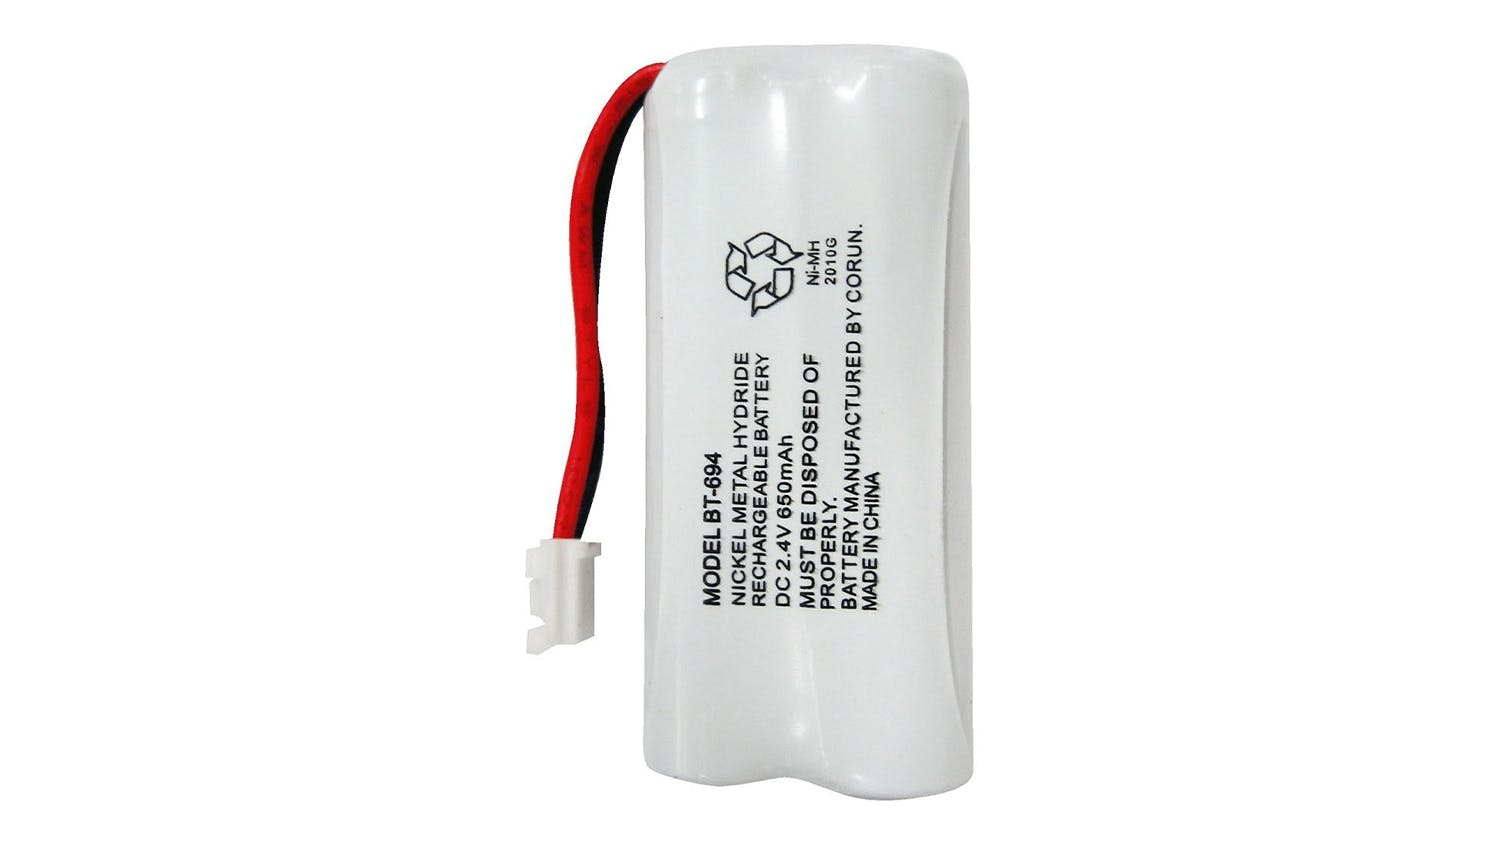 Uniden BT694 Replacement Battery